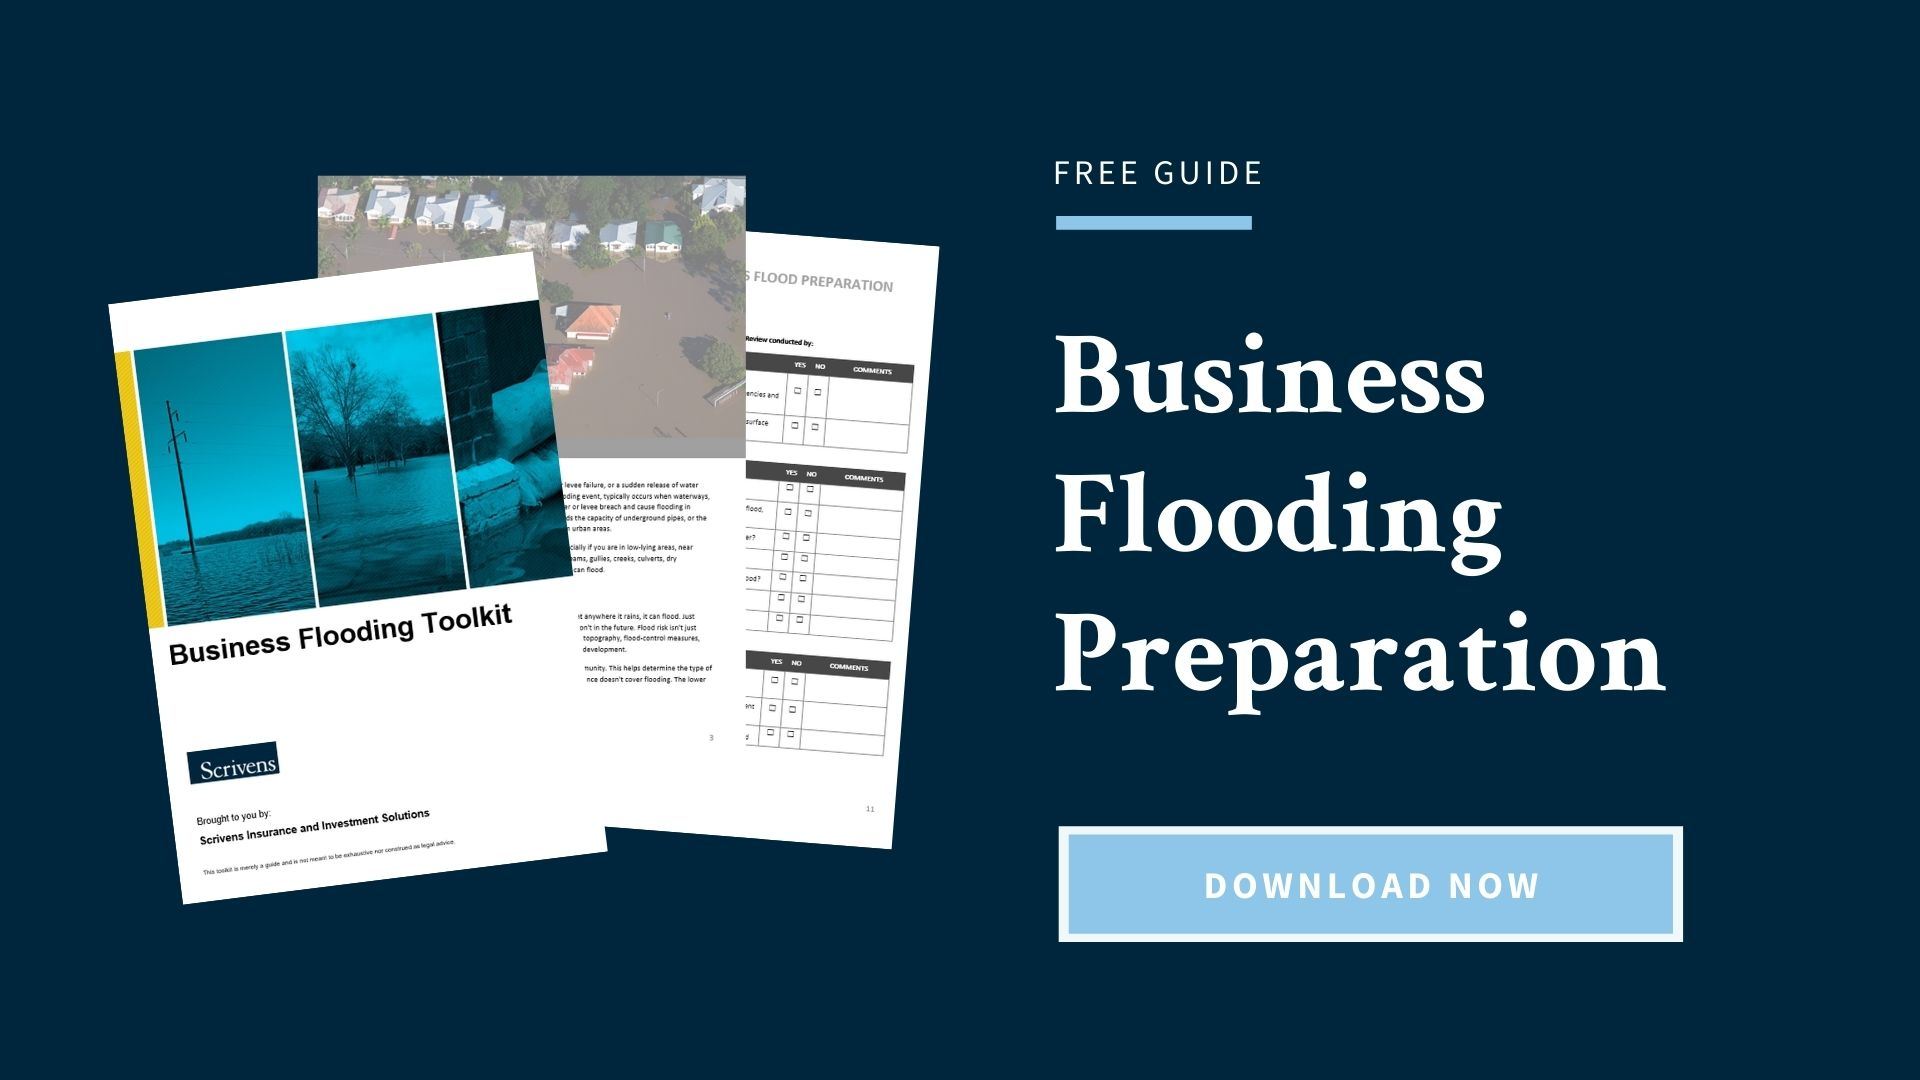 Download the Business Flooding Preparation Guide for Free